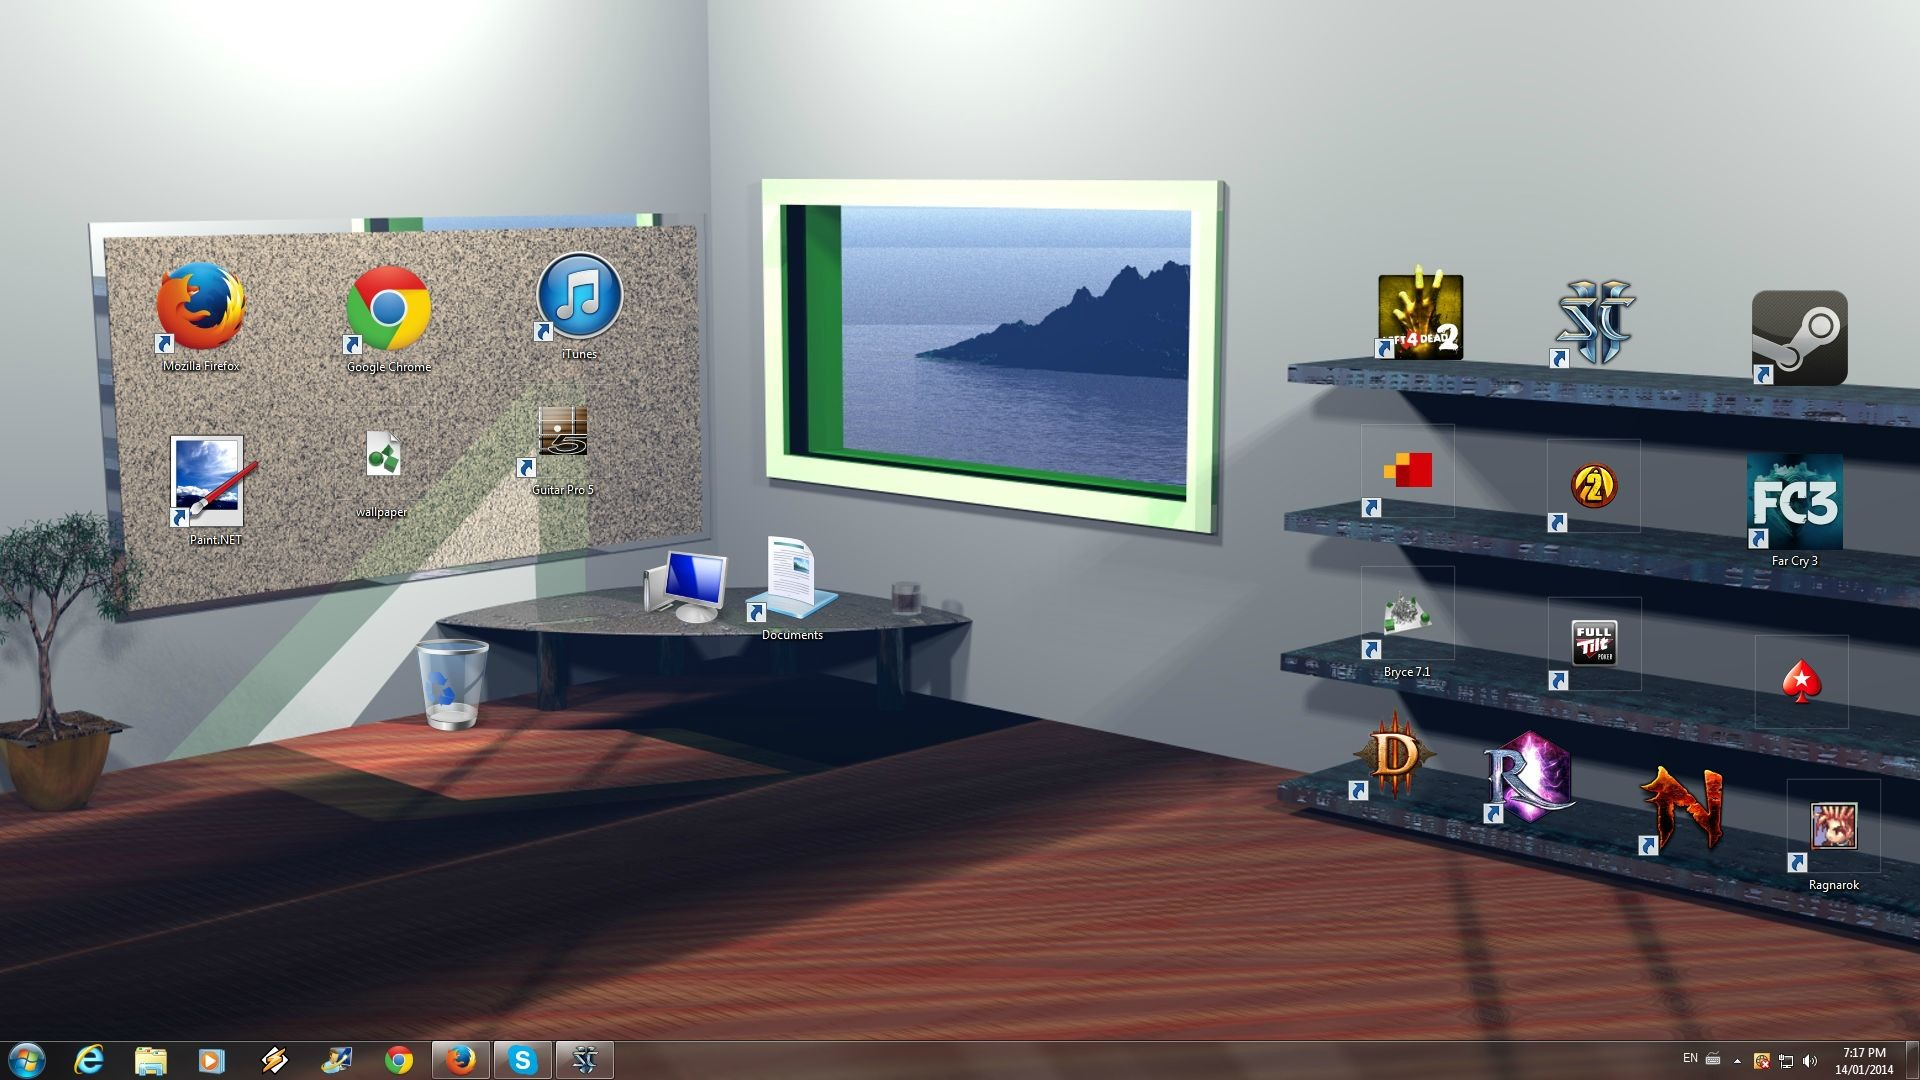 Make my desktop icons more readable! Solved  Windows 7